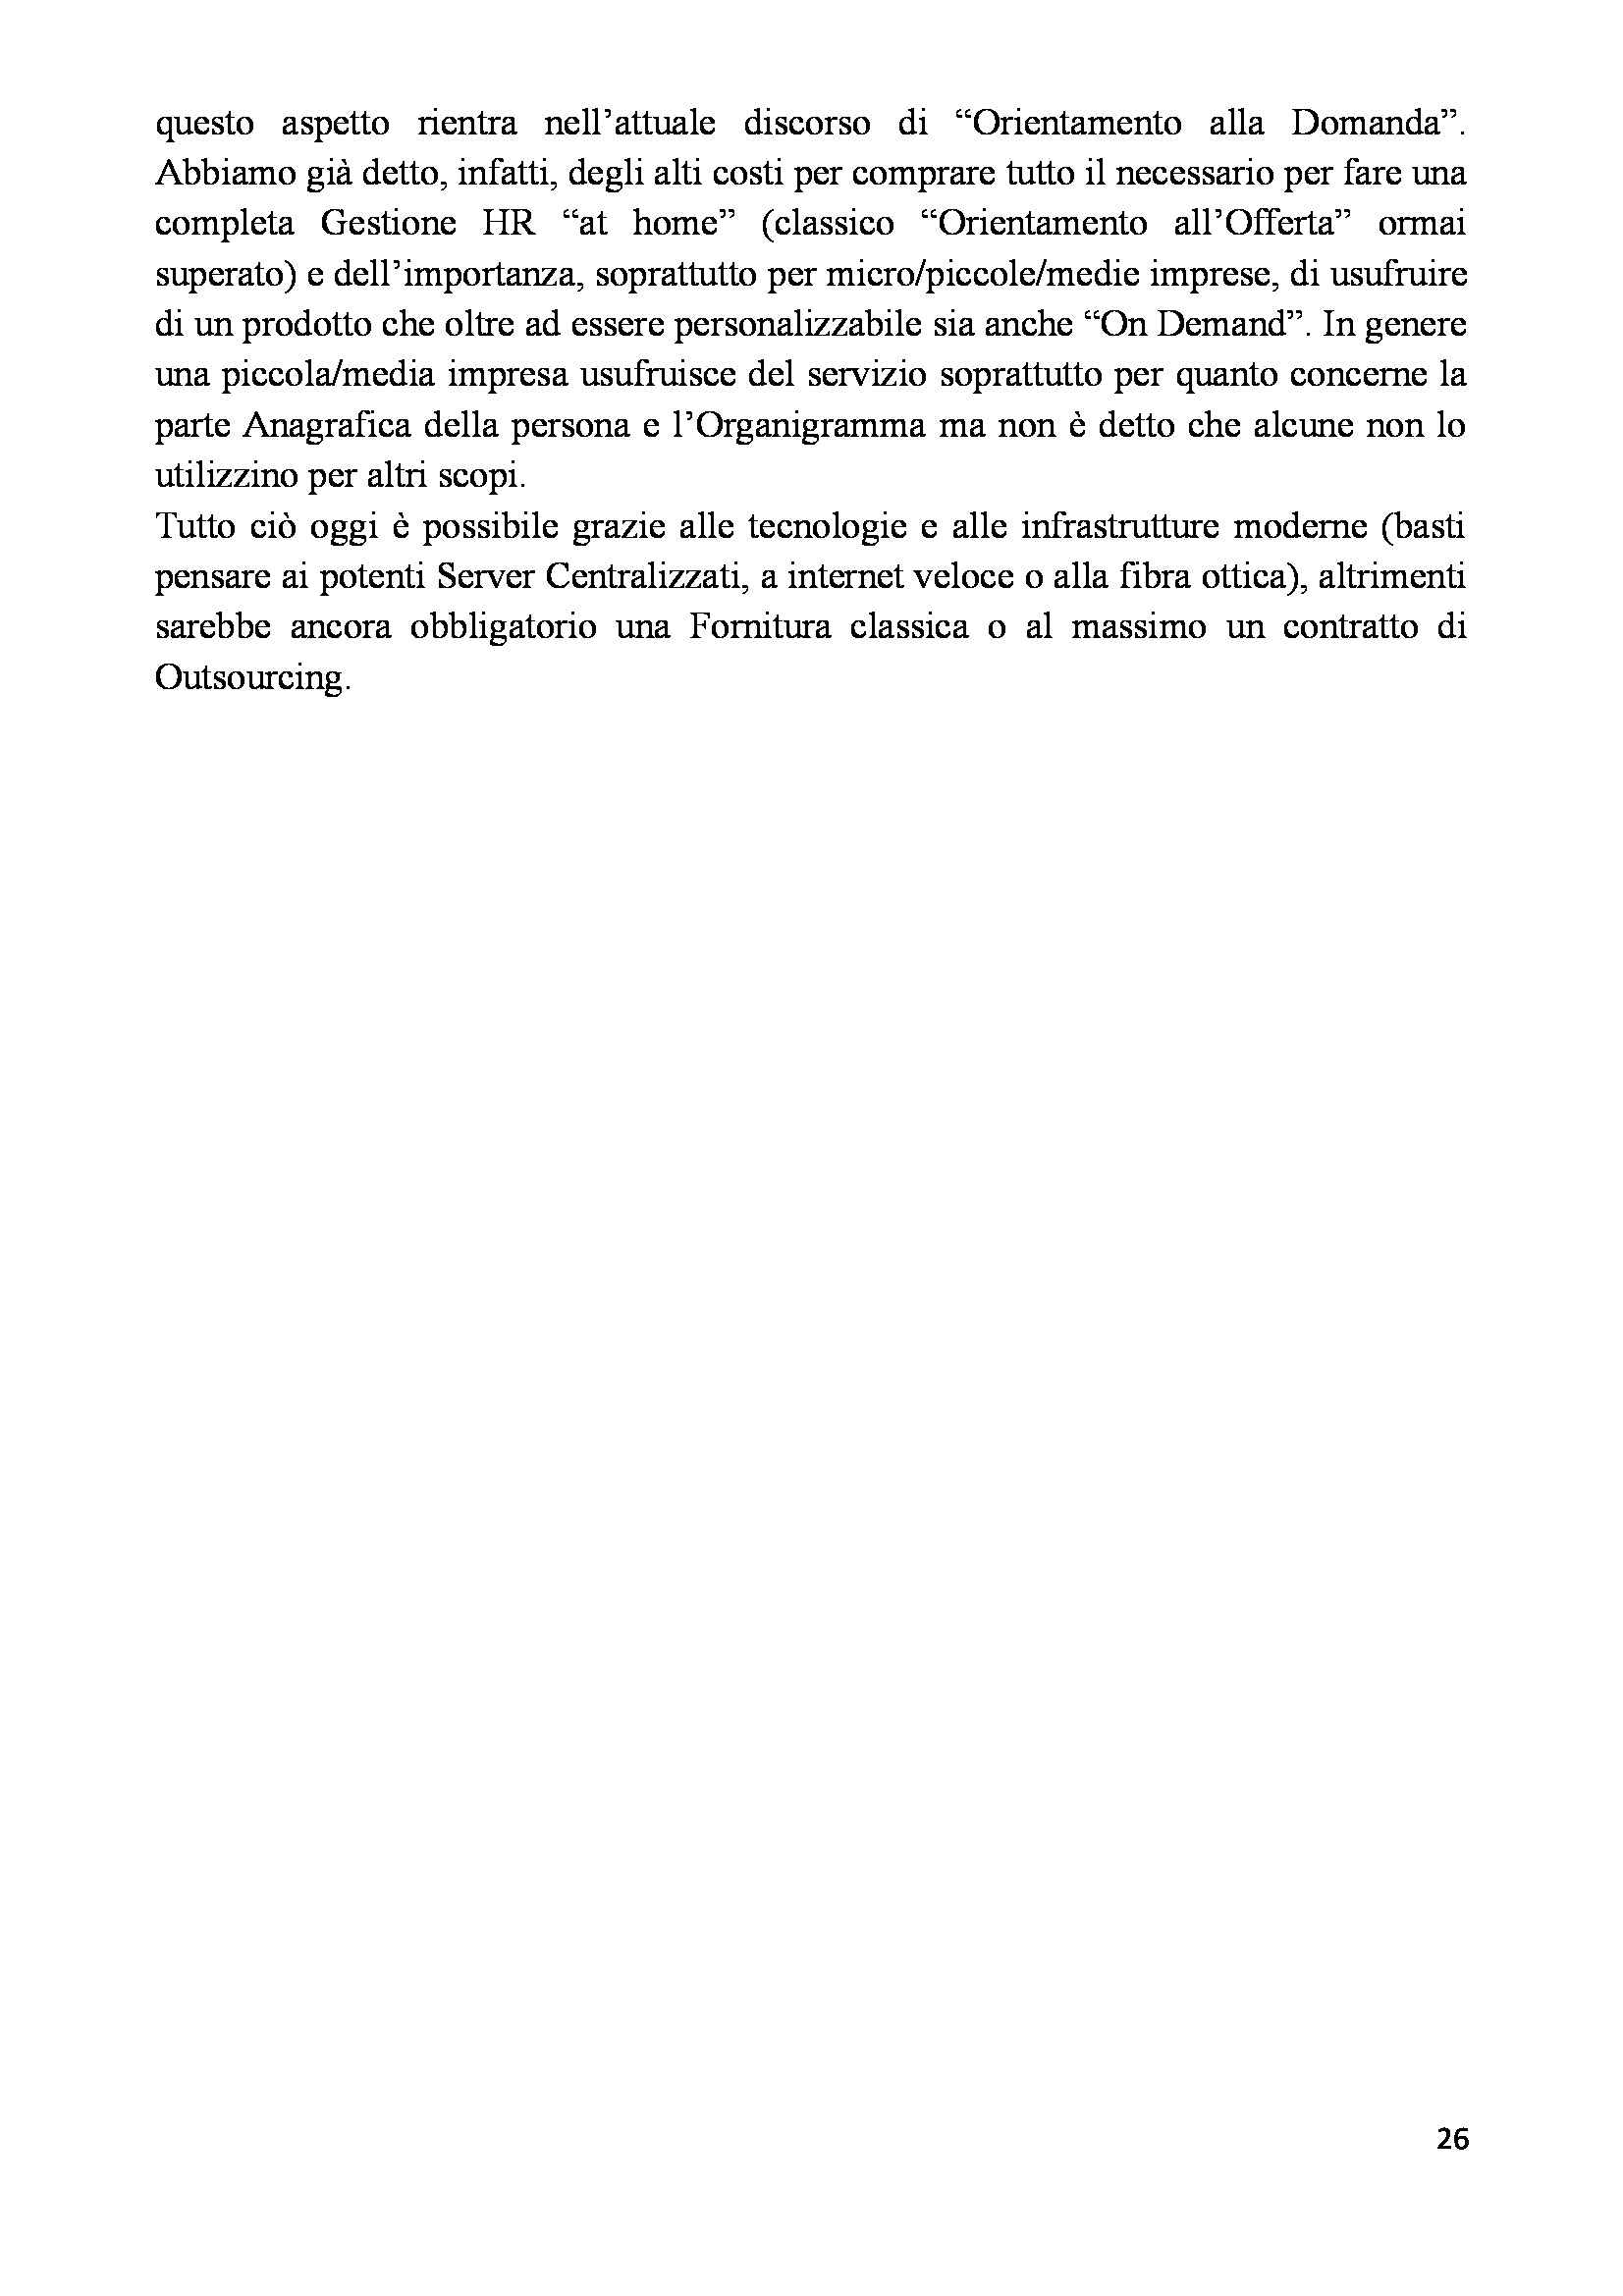 E-Business - Appunti Pag. 26